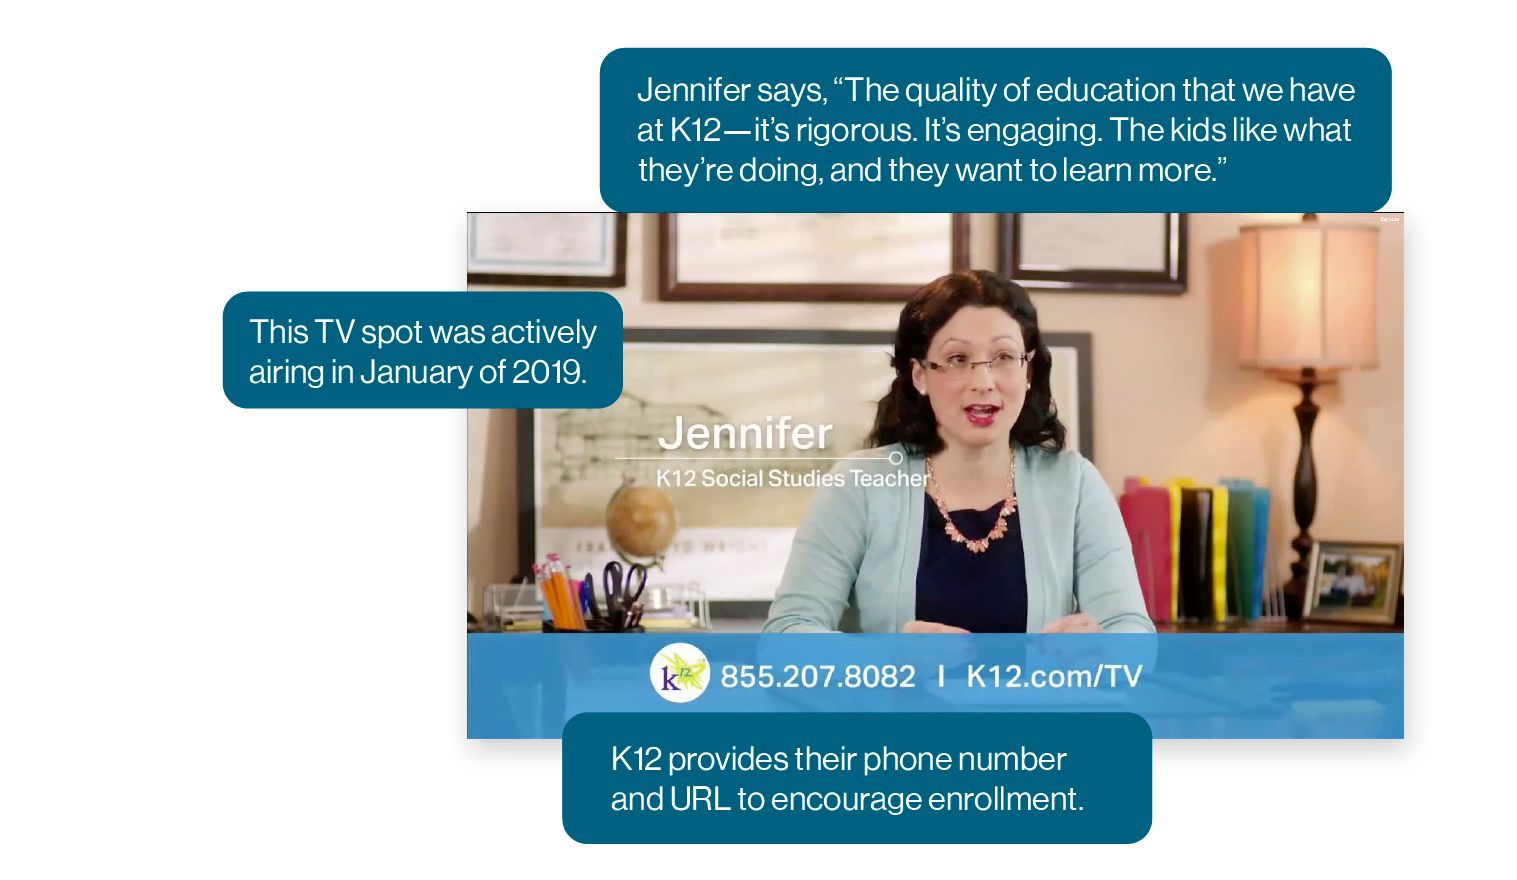 Image: A K12 Inc. TV ad spot example that features an instructor and provides a contact phone number and URL to encourage enrollment.